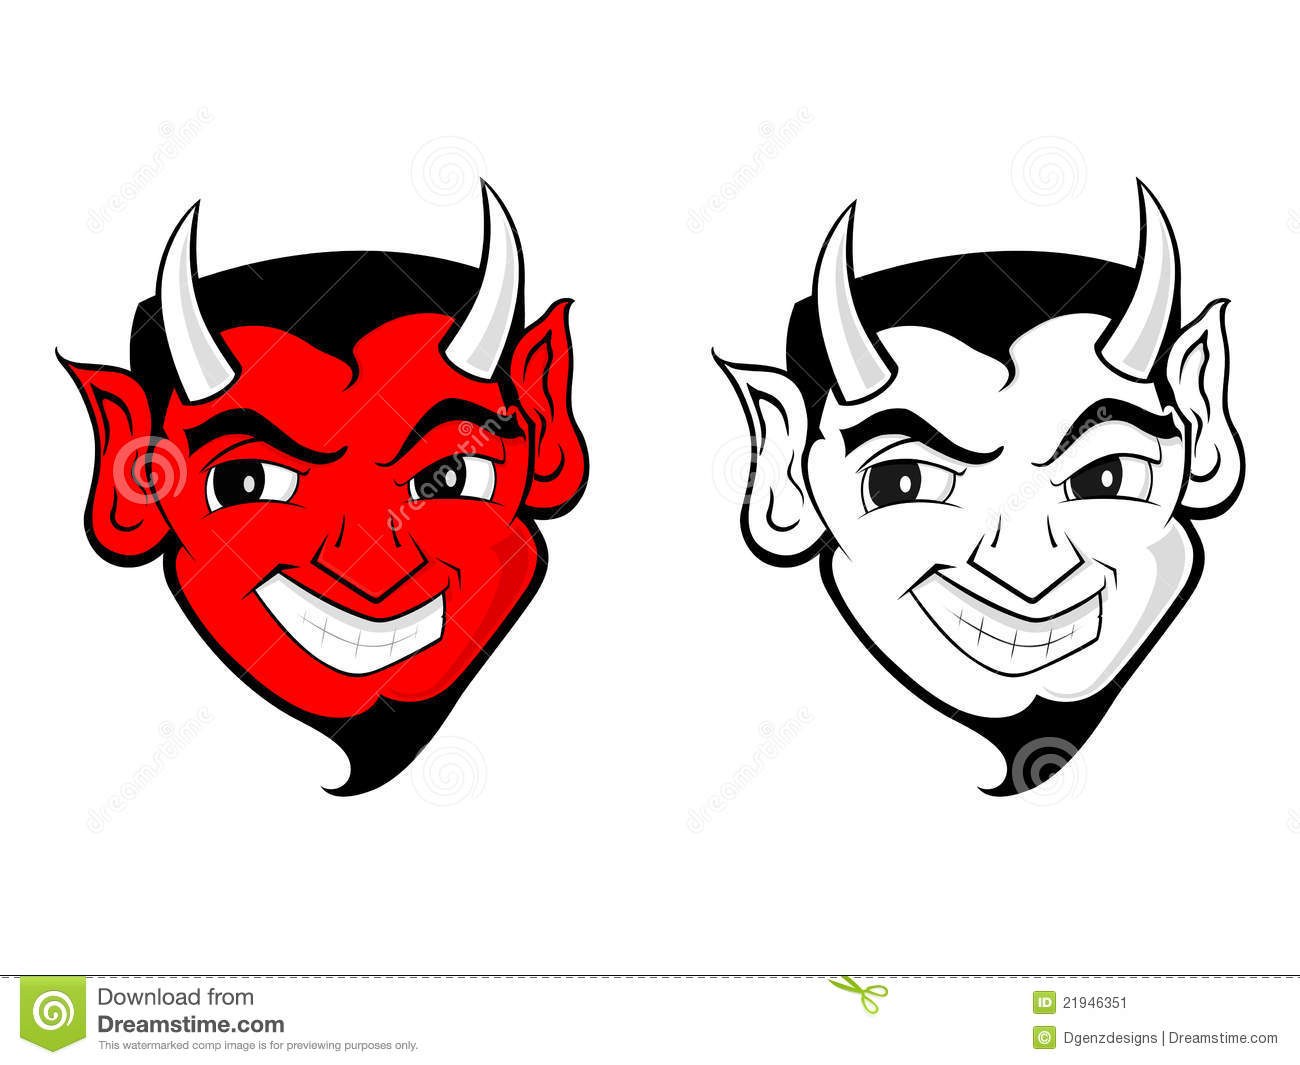 Demon clipart devil face. Mascot stock illustration of png black and white download